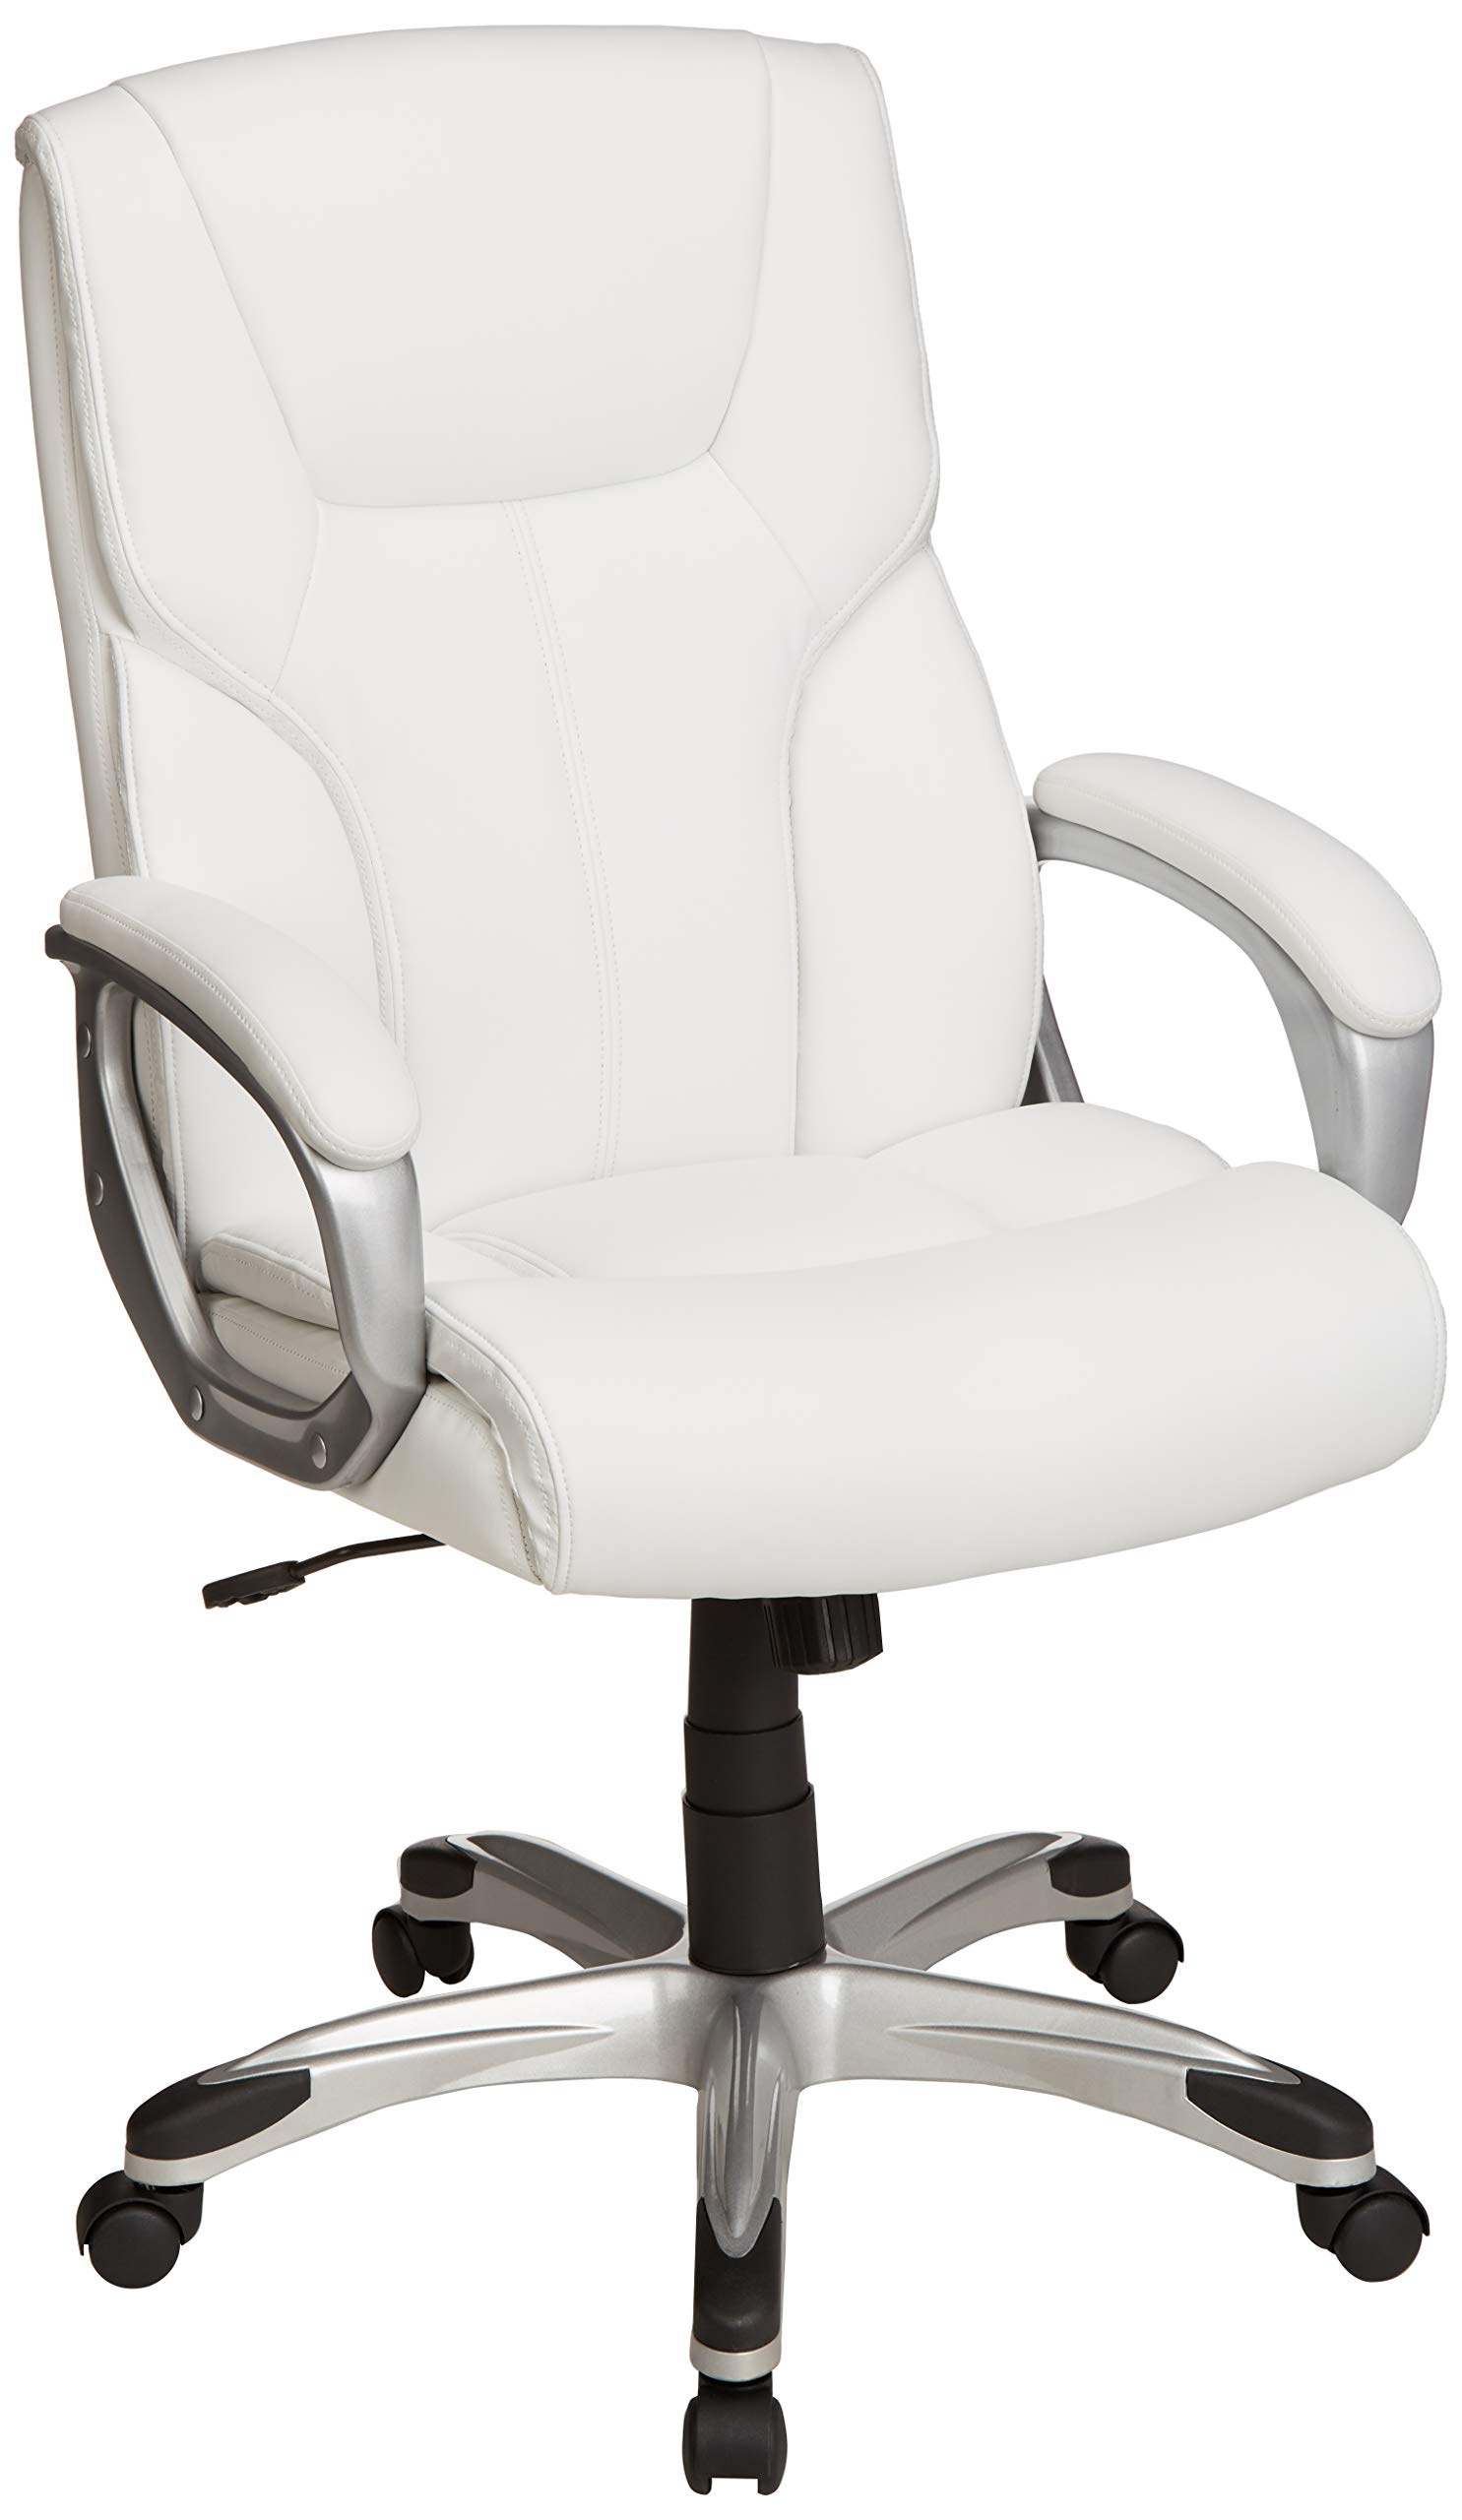 Amazon price history for AmazonBasics High-Back Executive Swivel Office Desk Chair - White with Pewter Finish, BIFMA Certified